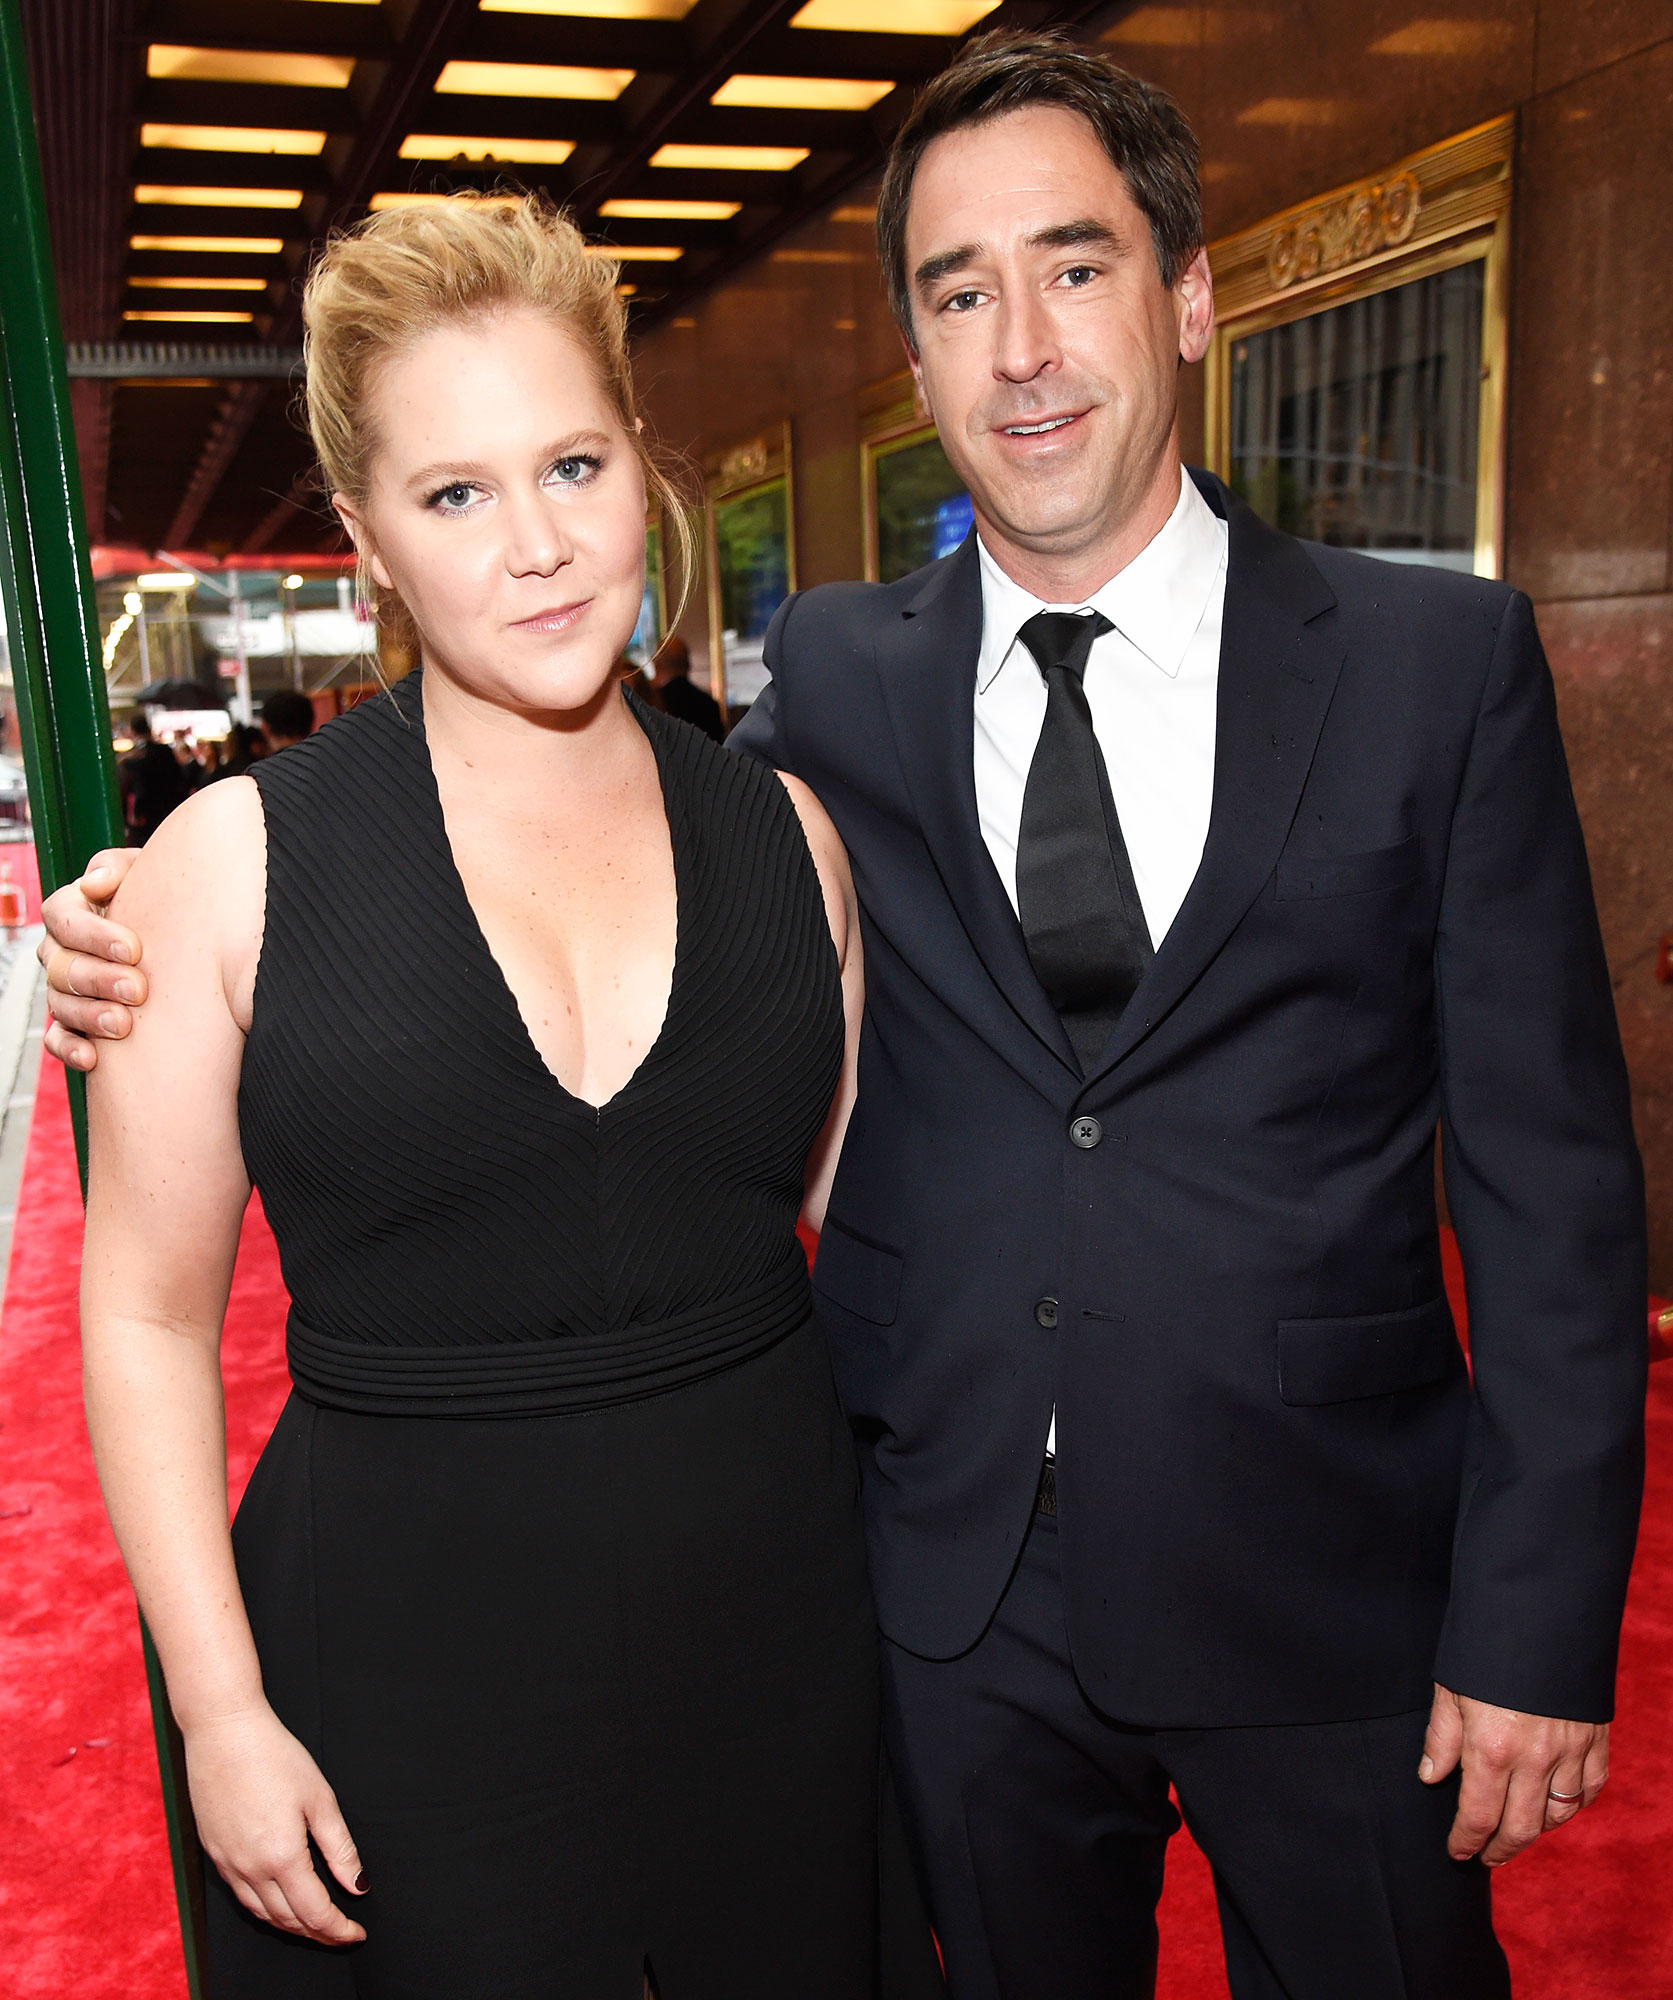 Chris Fischer Amy Schumer Returns Comedy After Giving Birth